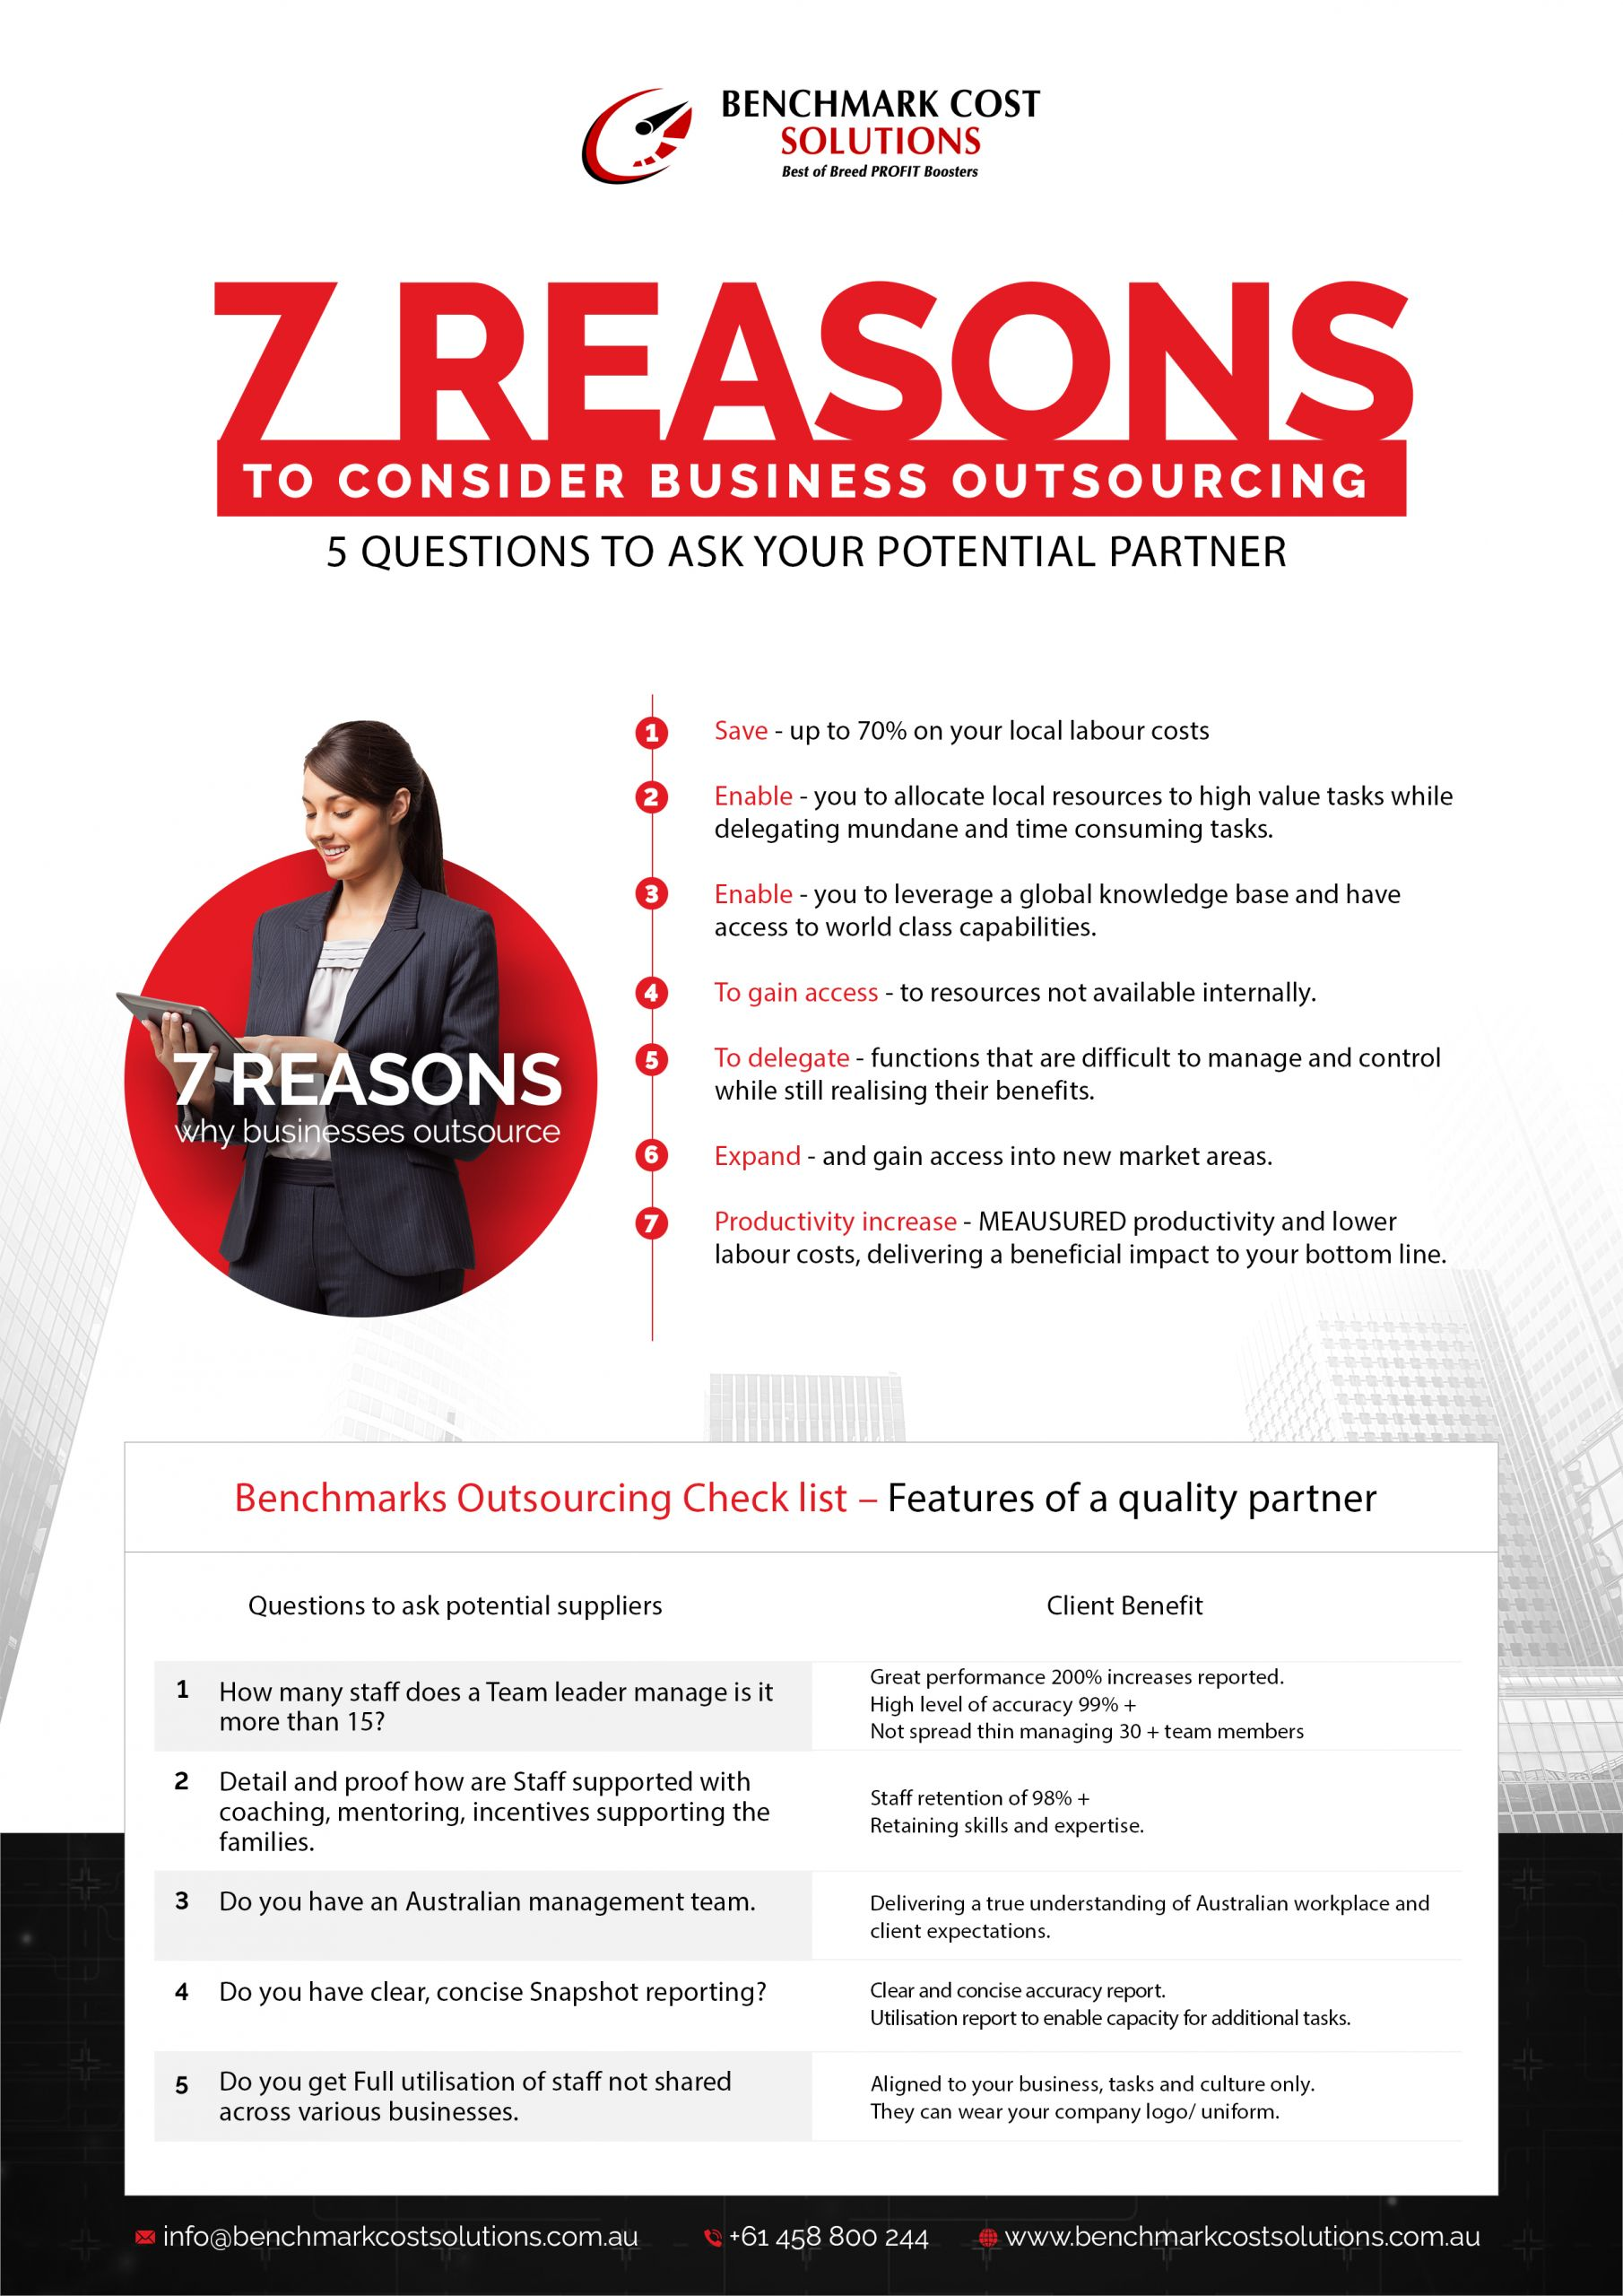 7 Reasons-Benchmark Cost Solutions